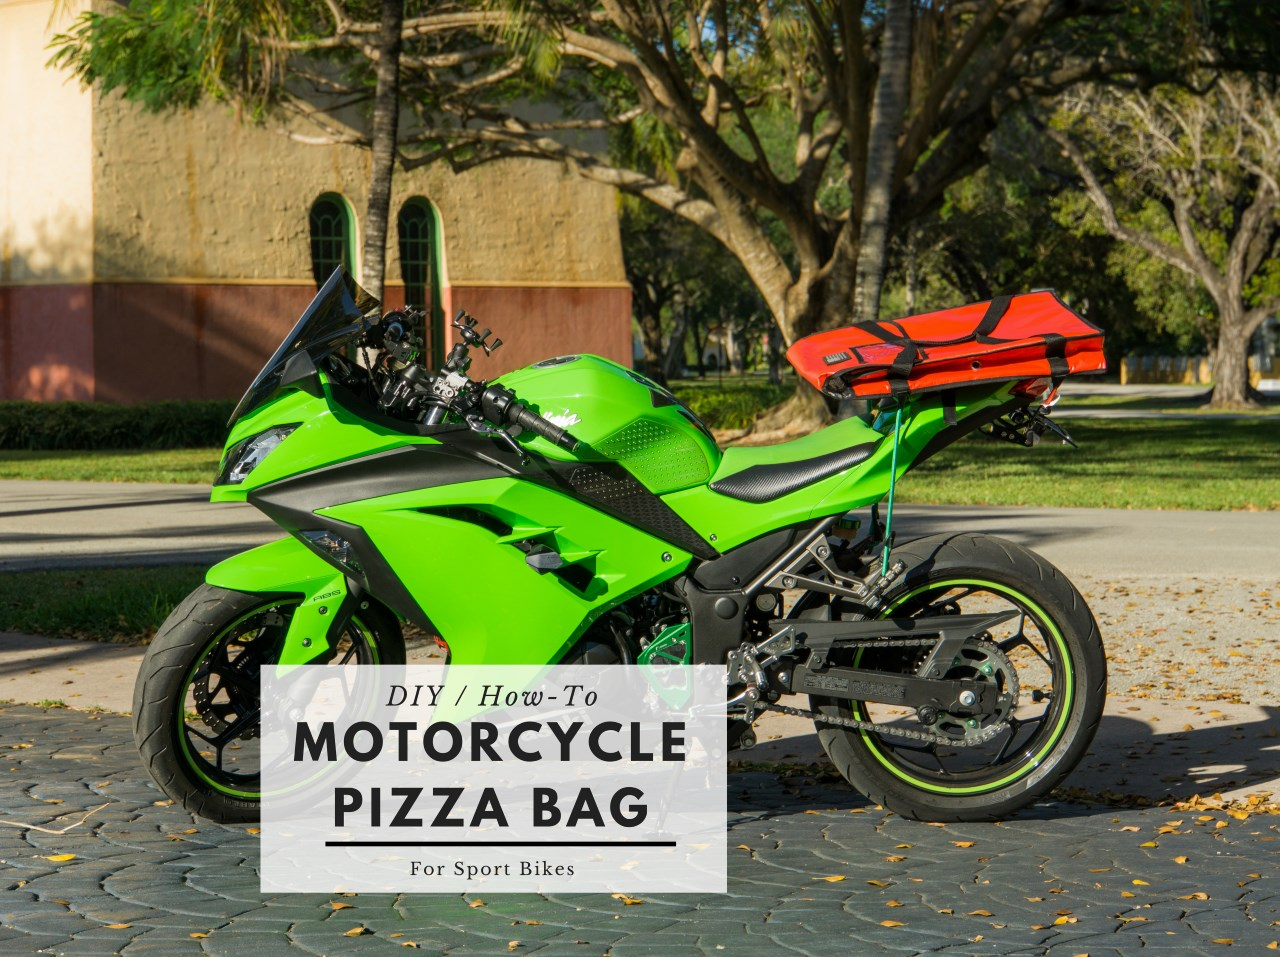 Insulated Pizza Bag for motorcycles on a 2015 Kawasaki Ninja 300 sport bike